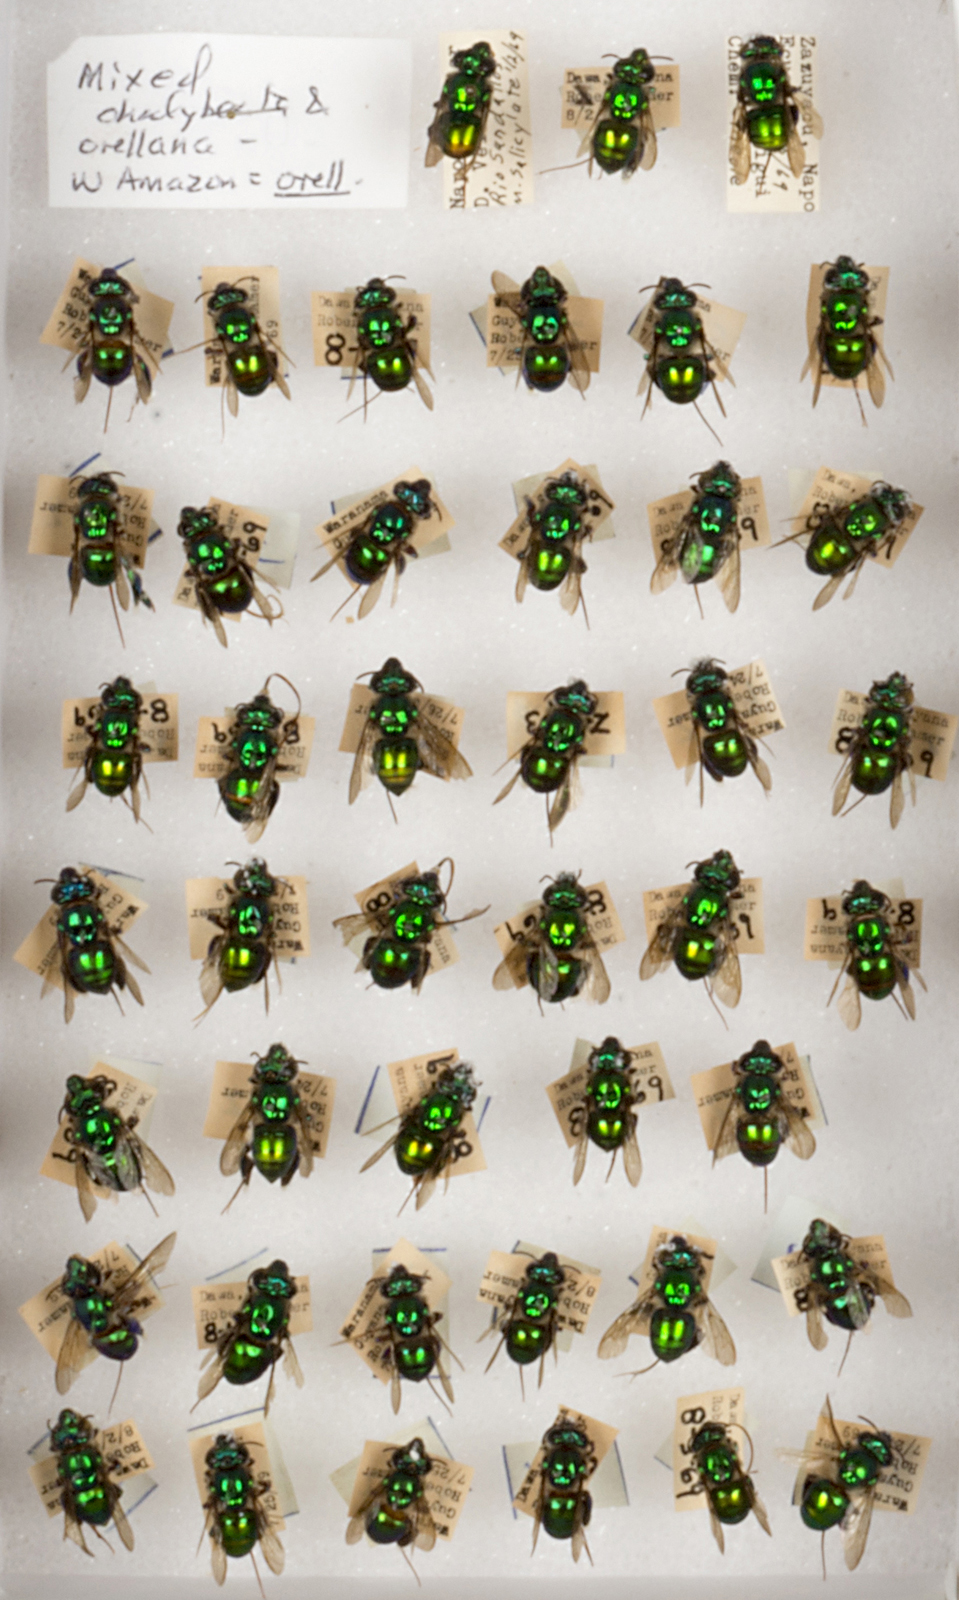 Bee Collection, Detail, Euglossine, Orchid Bees